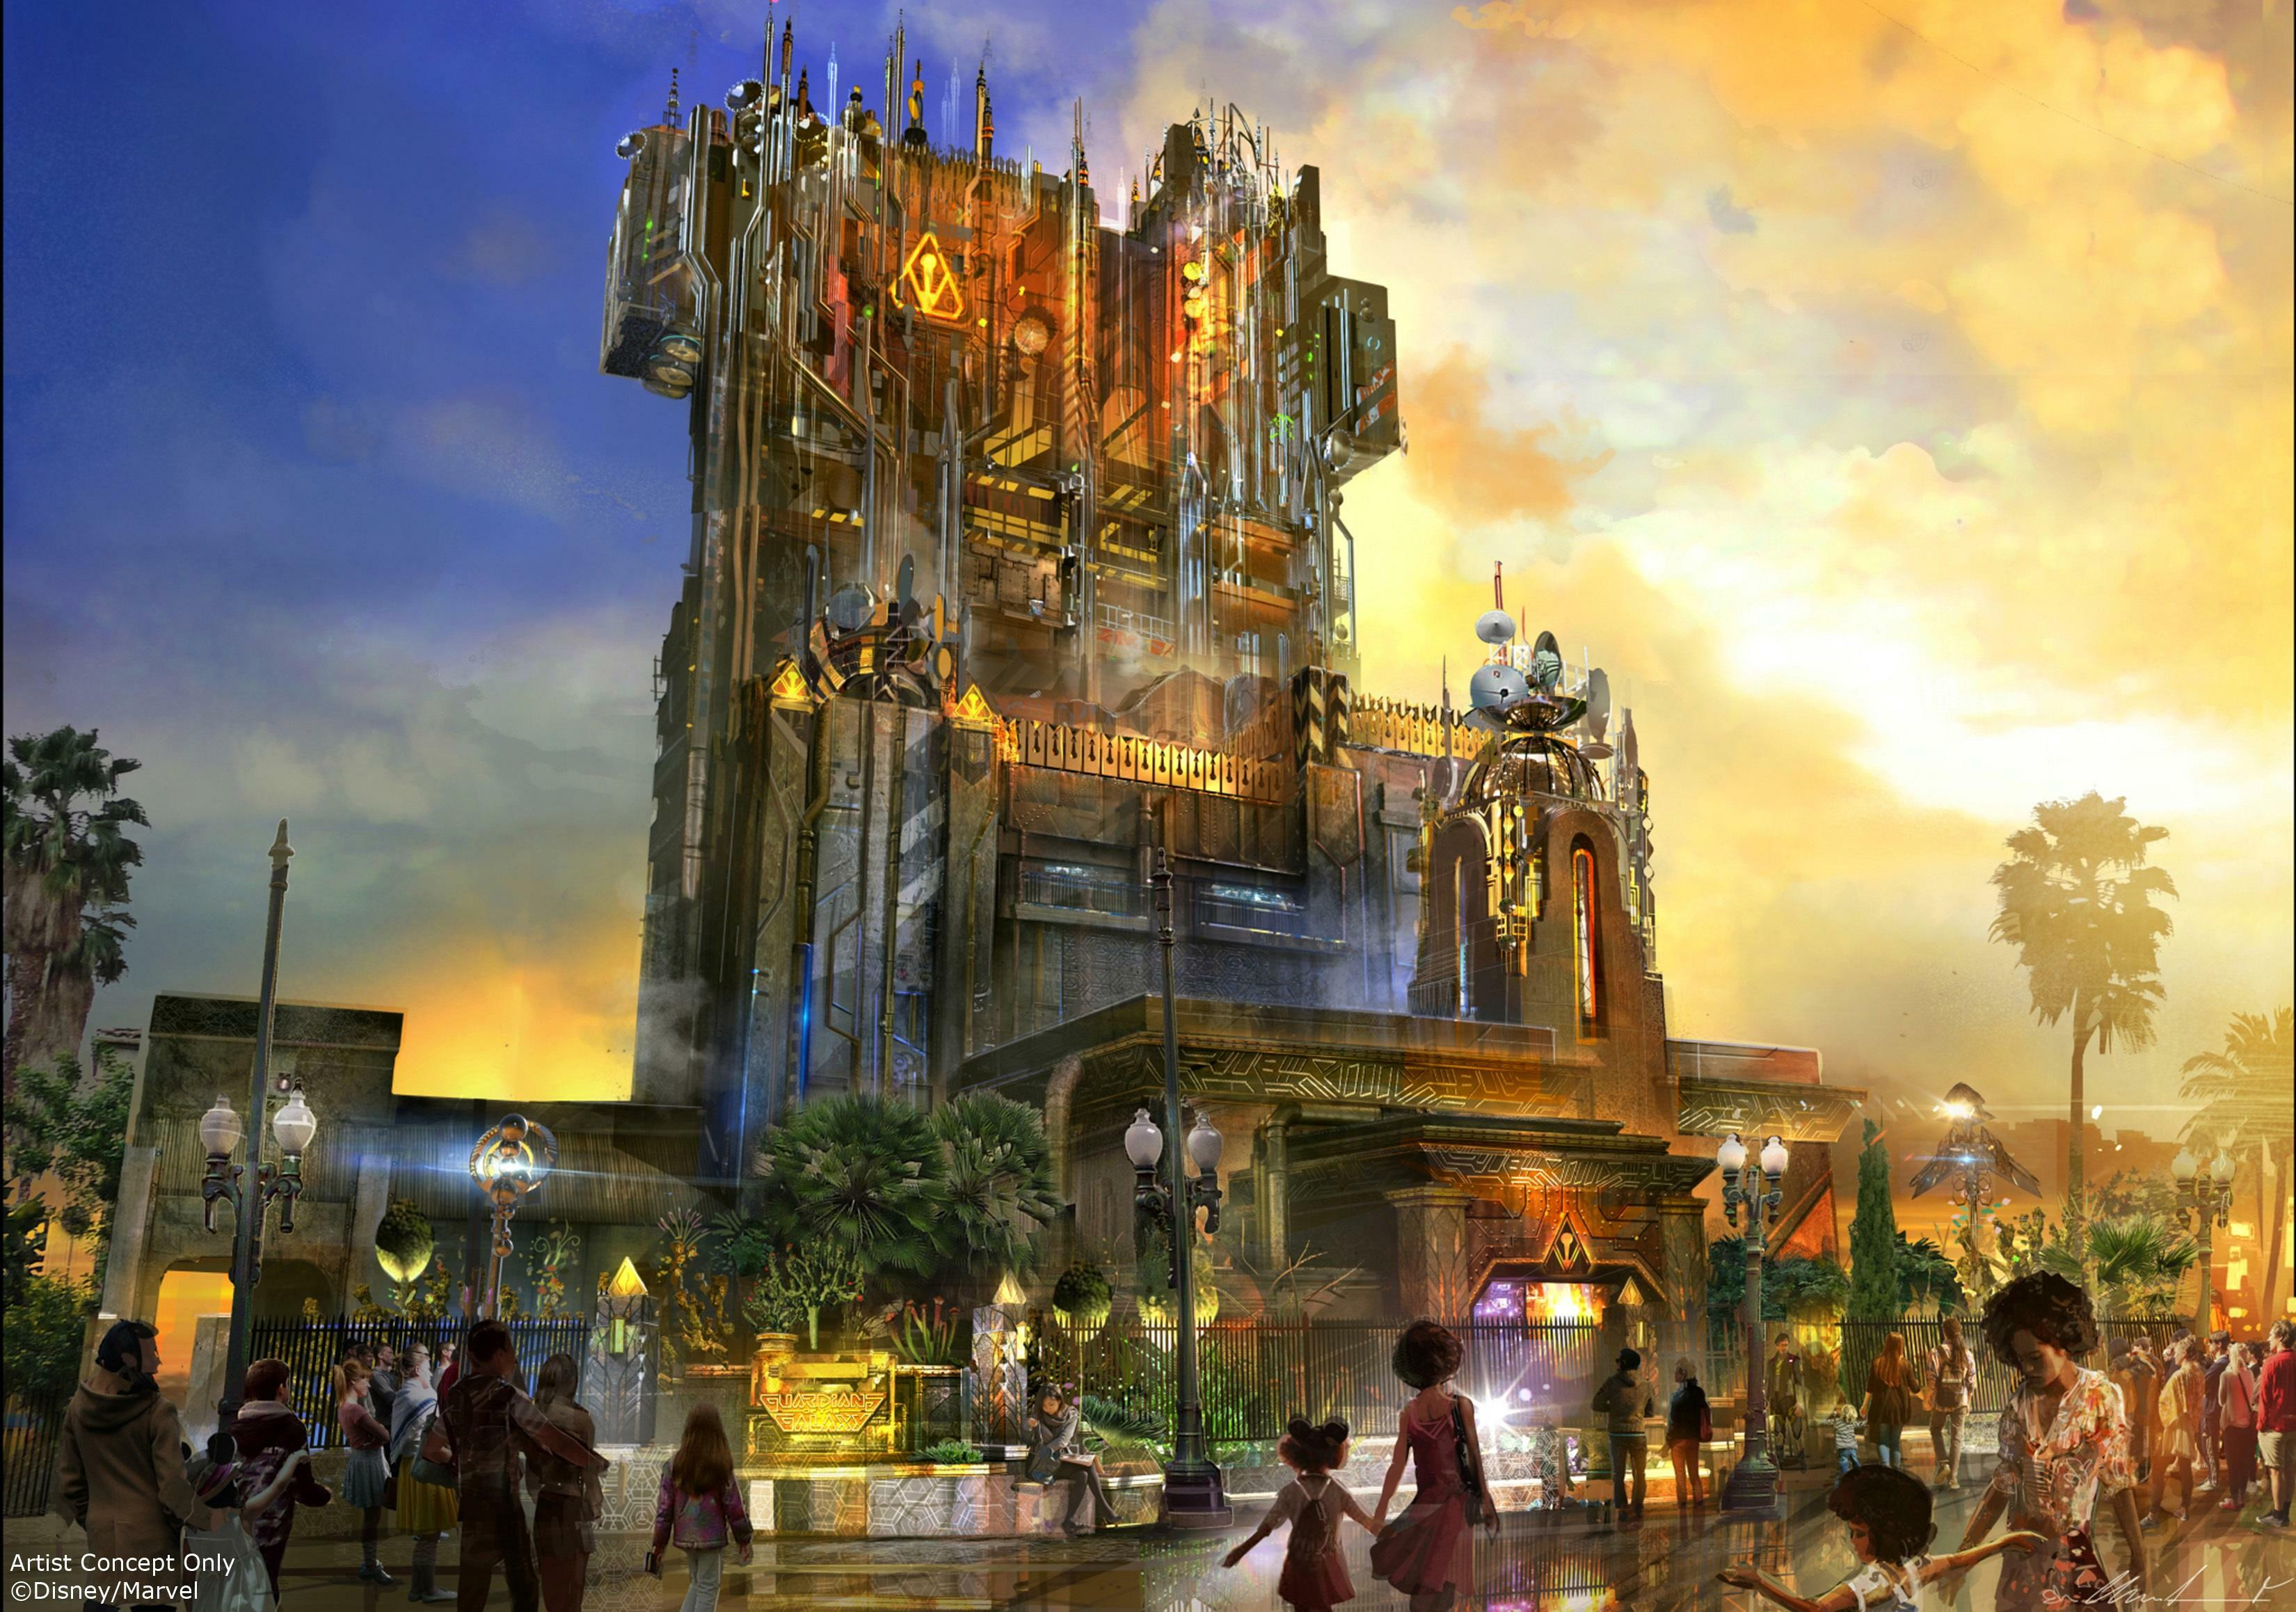 The Guardians of the Galaxy - Themed Lands Coming to Disney